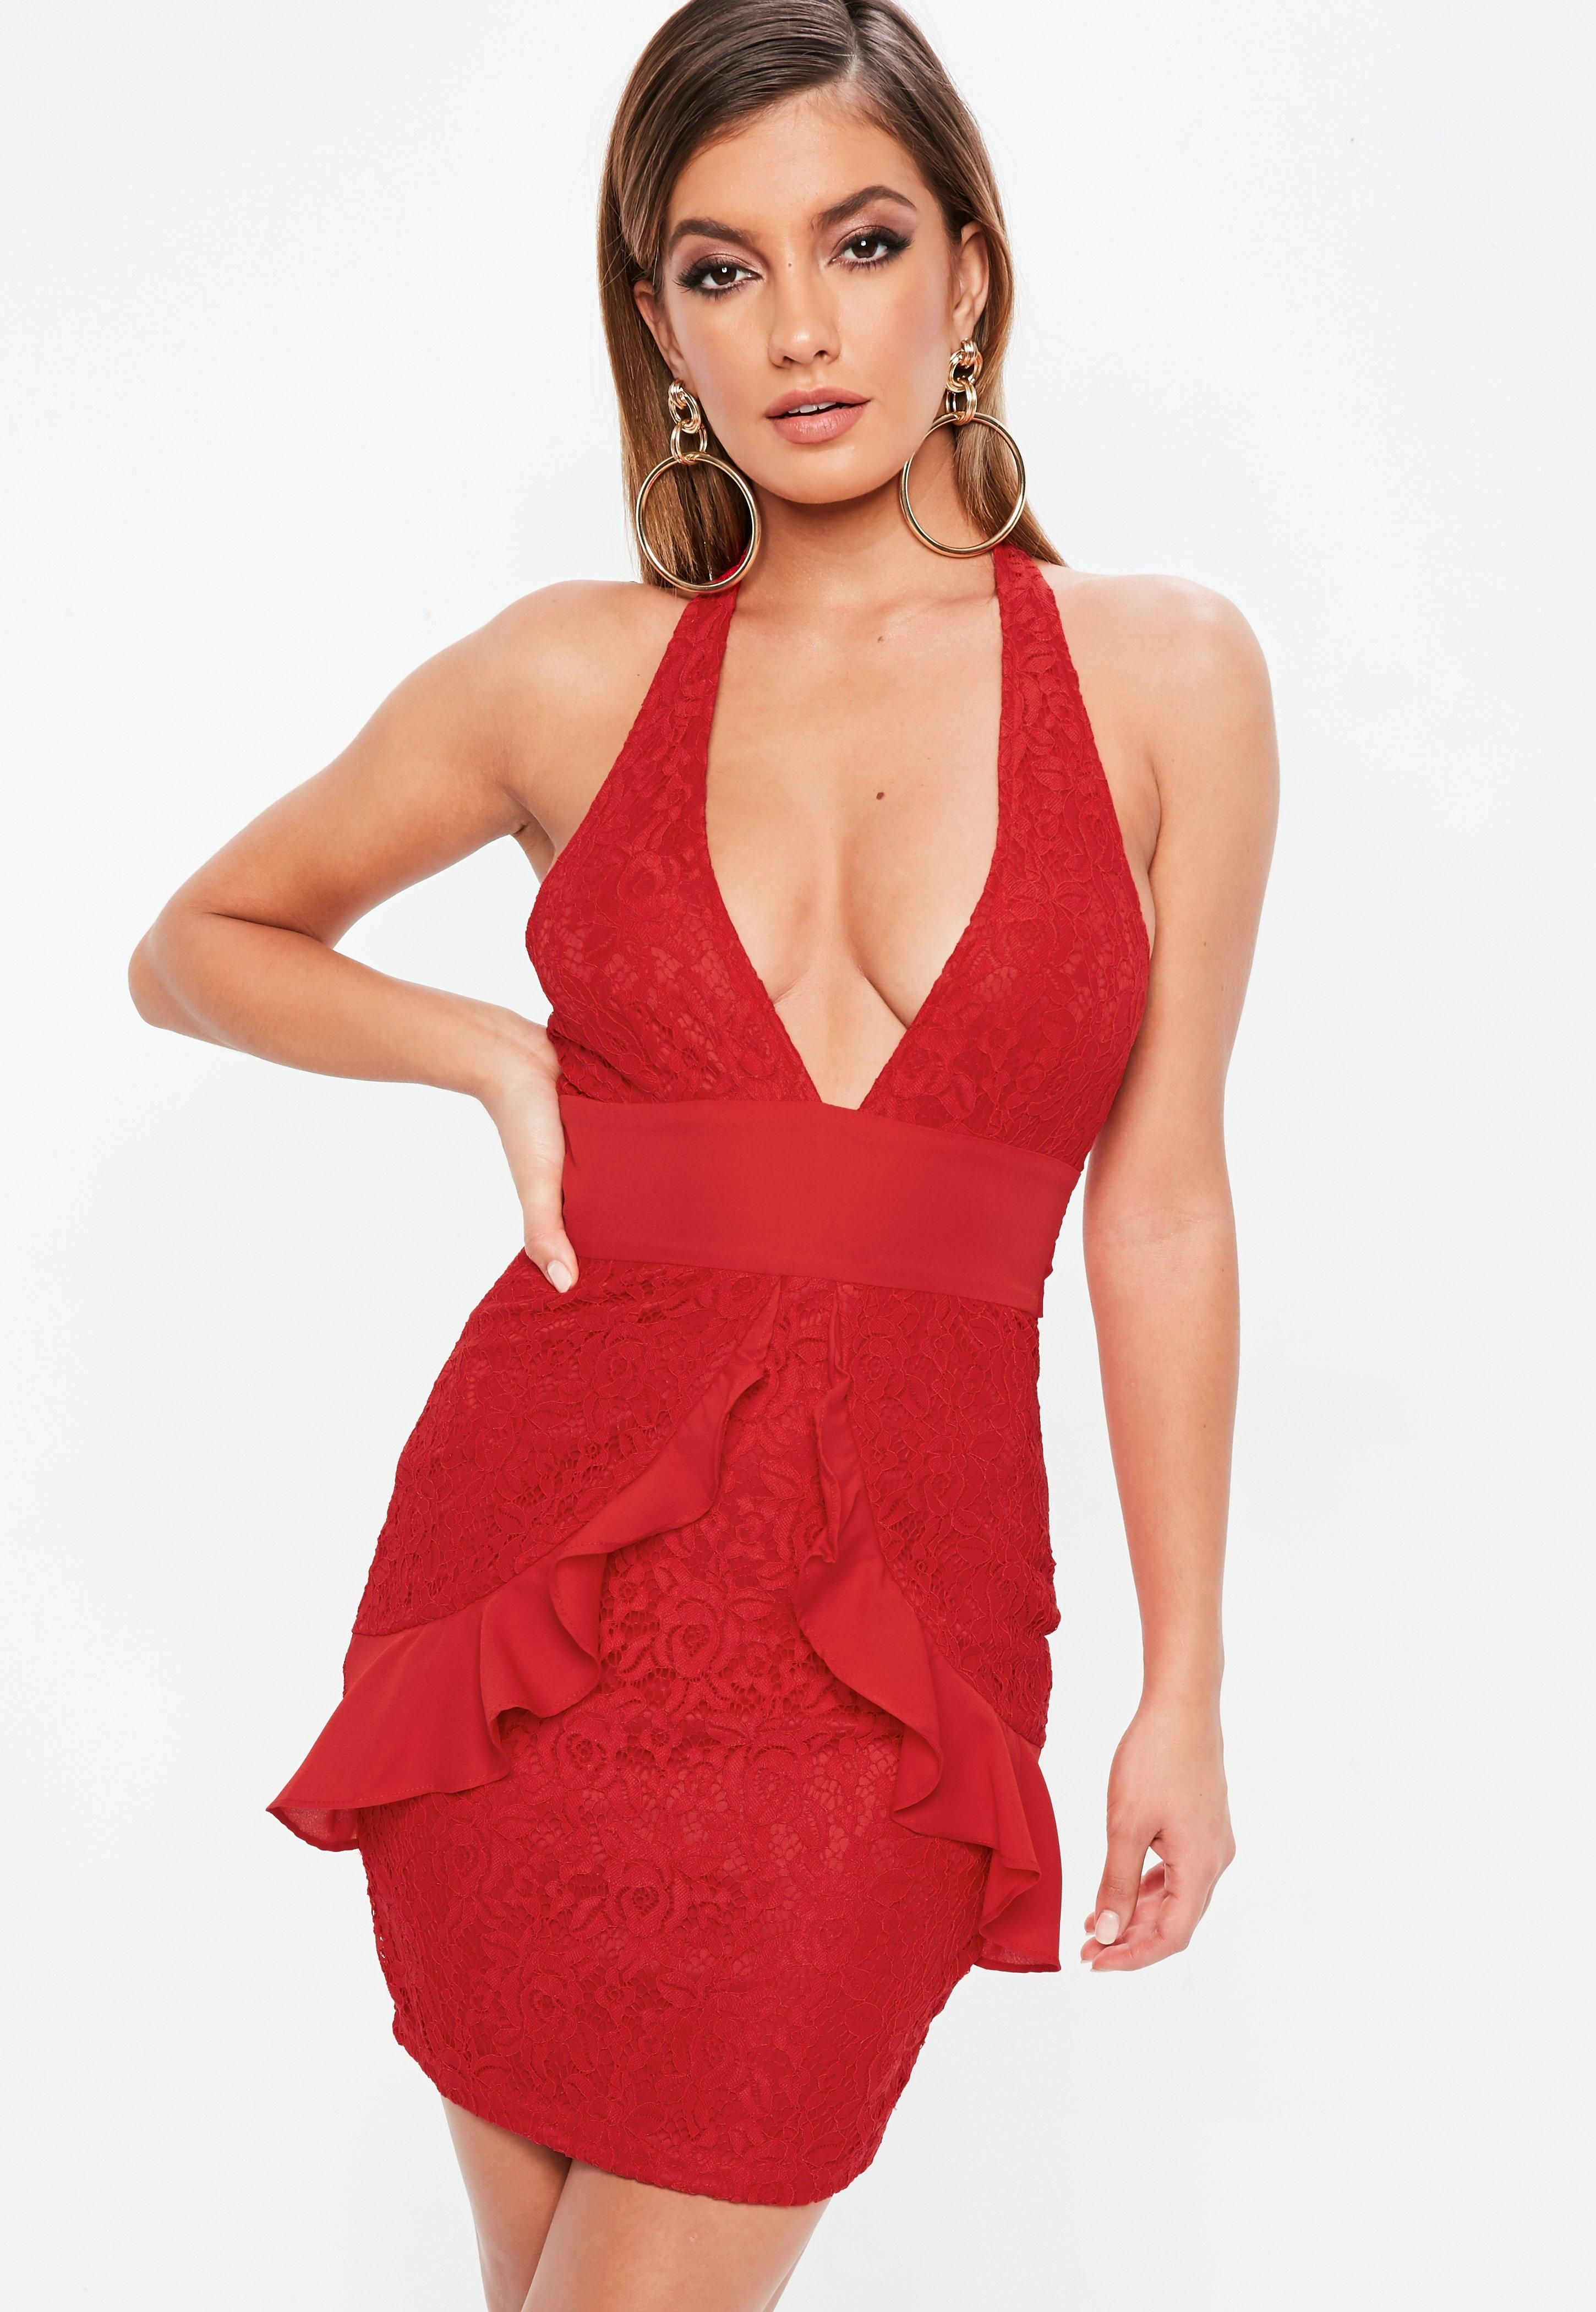 c0dceb85ff35 1/18/19 Brand/Designer: Missguided Material: Polyester Dress Silhouette: Bodycon  Neckline: Halter Plunging Neck Embellishments: Lace Closure/Back: Hidden ...